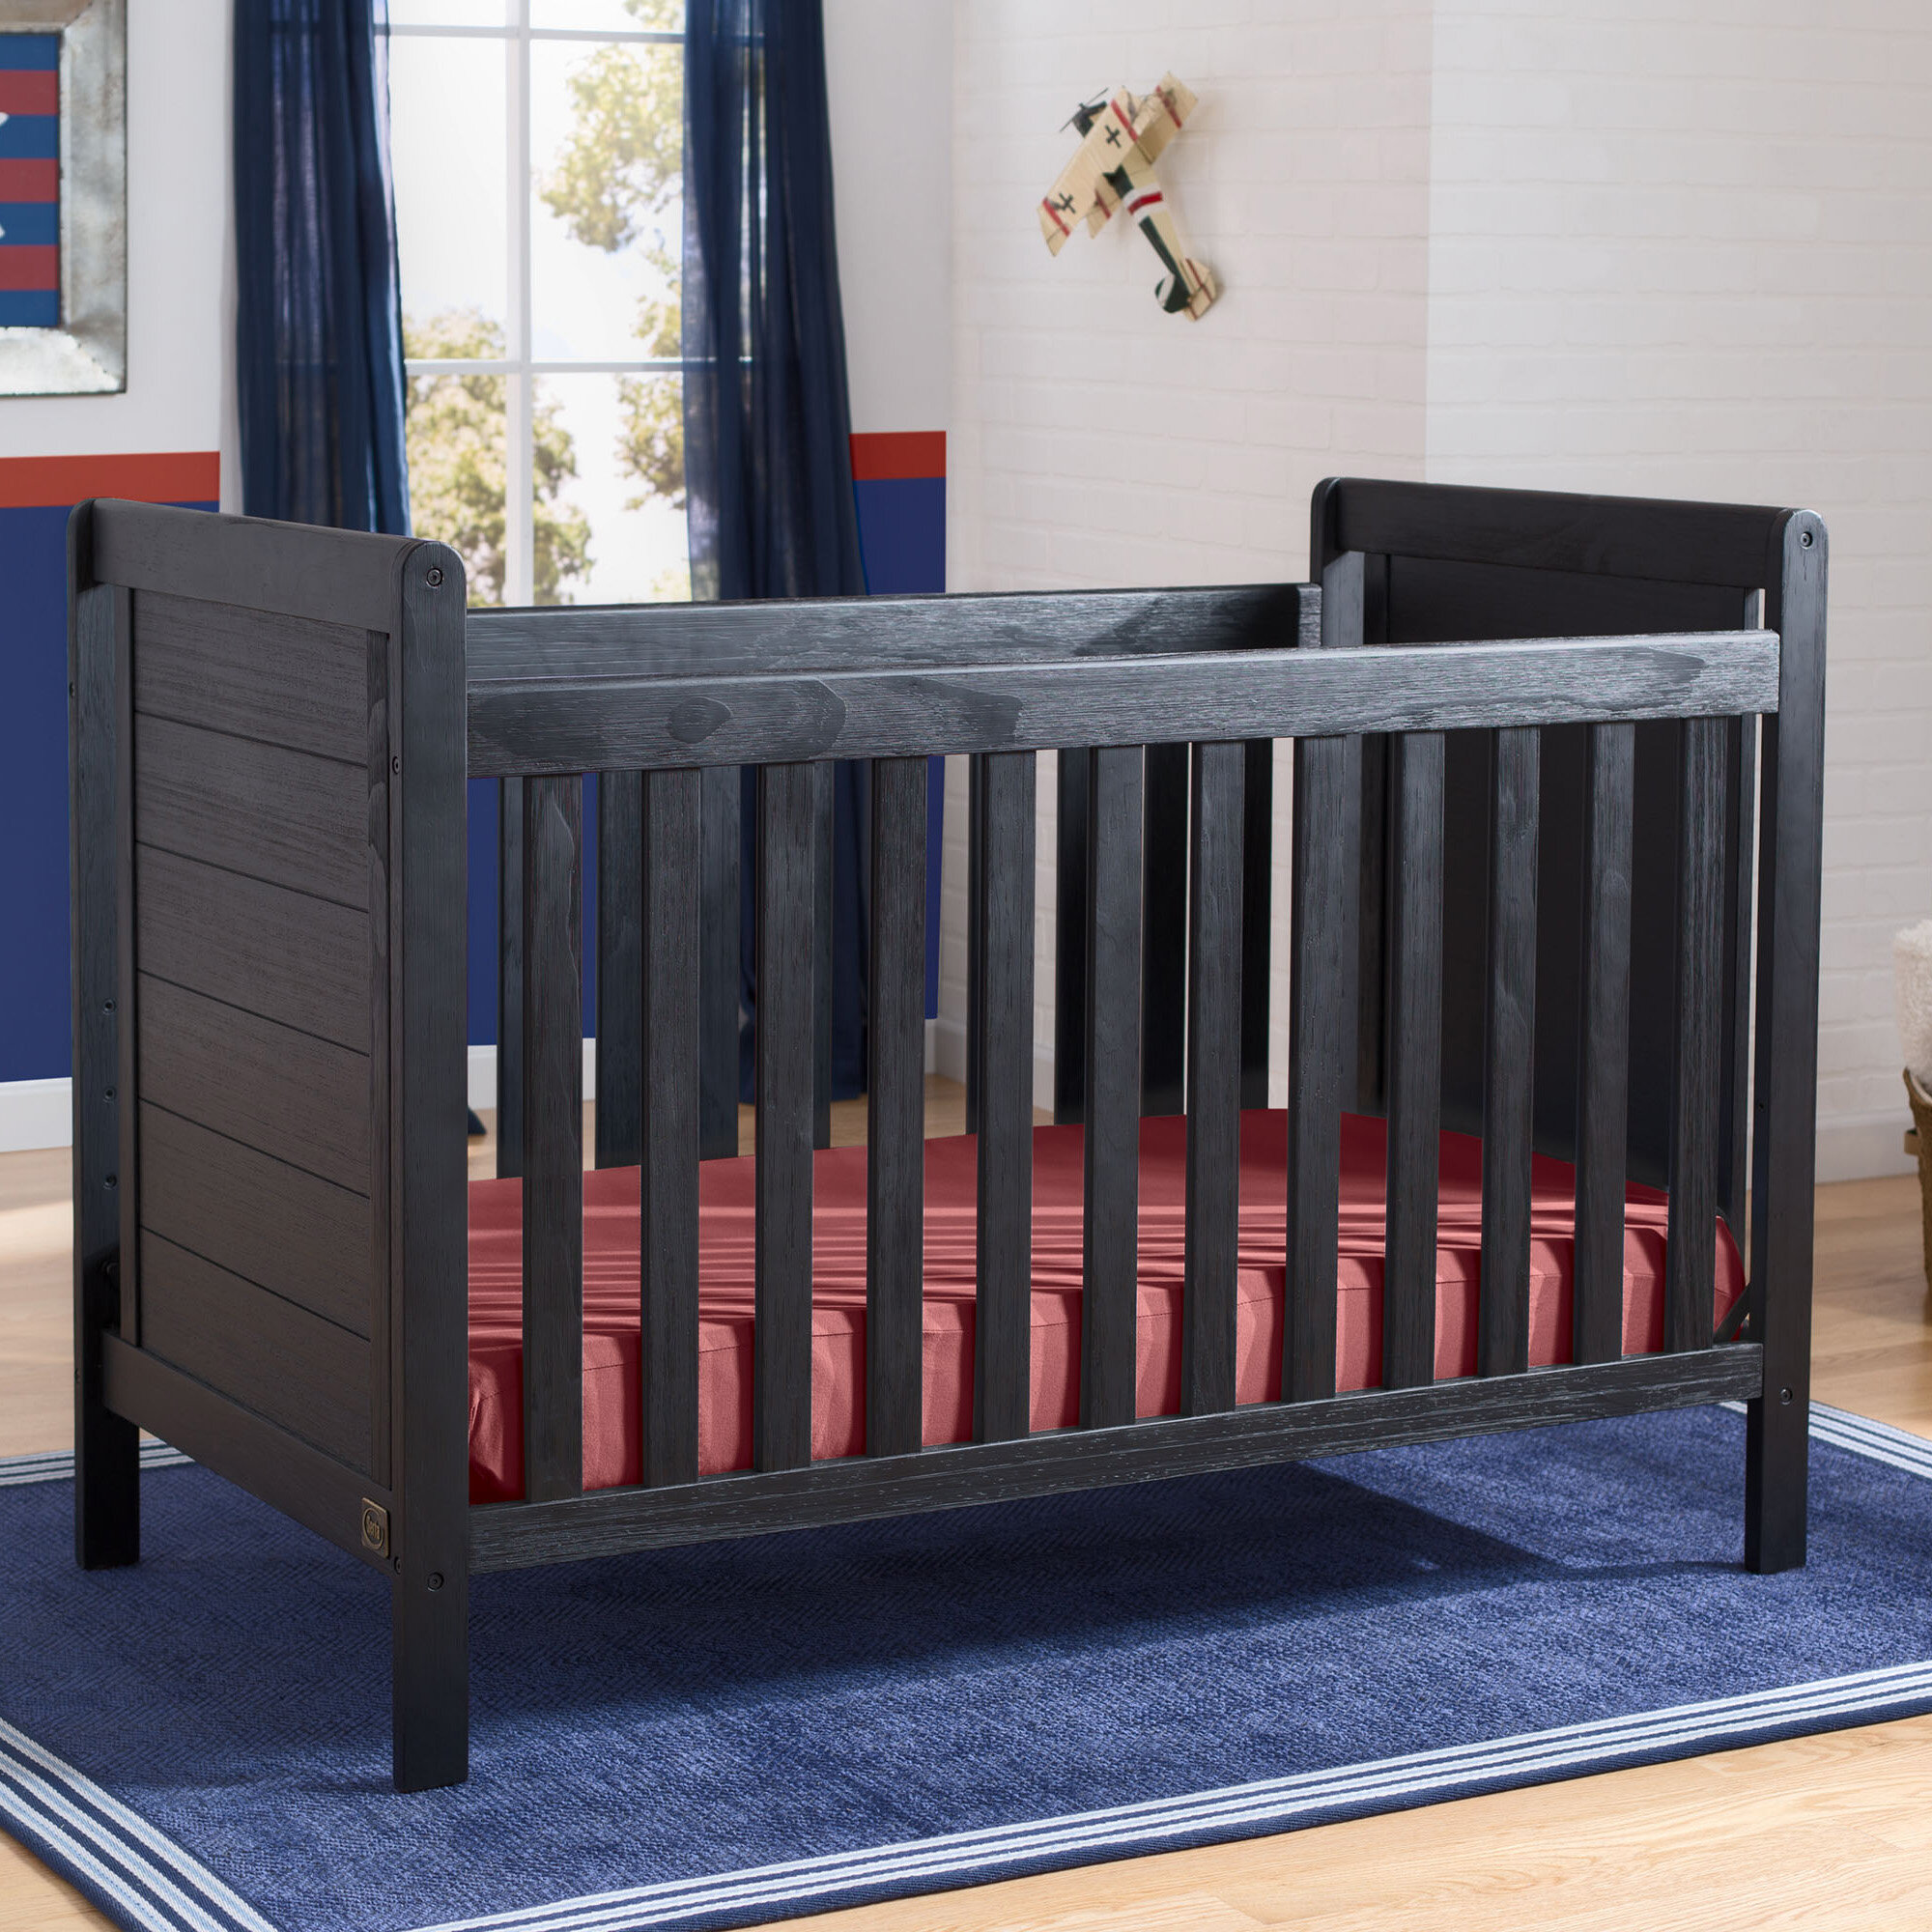 the in through cribs why maker convertible parents gugu invest milk blog true tot meet bed should crib see street mud sn baby guru